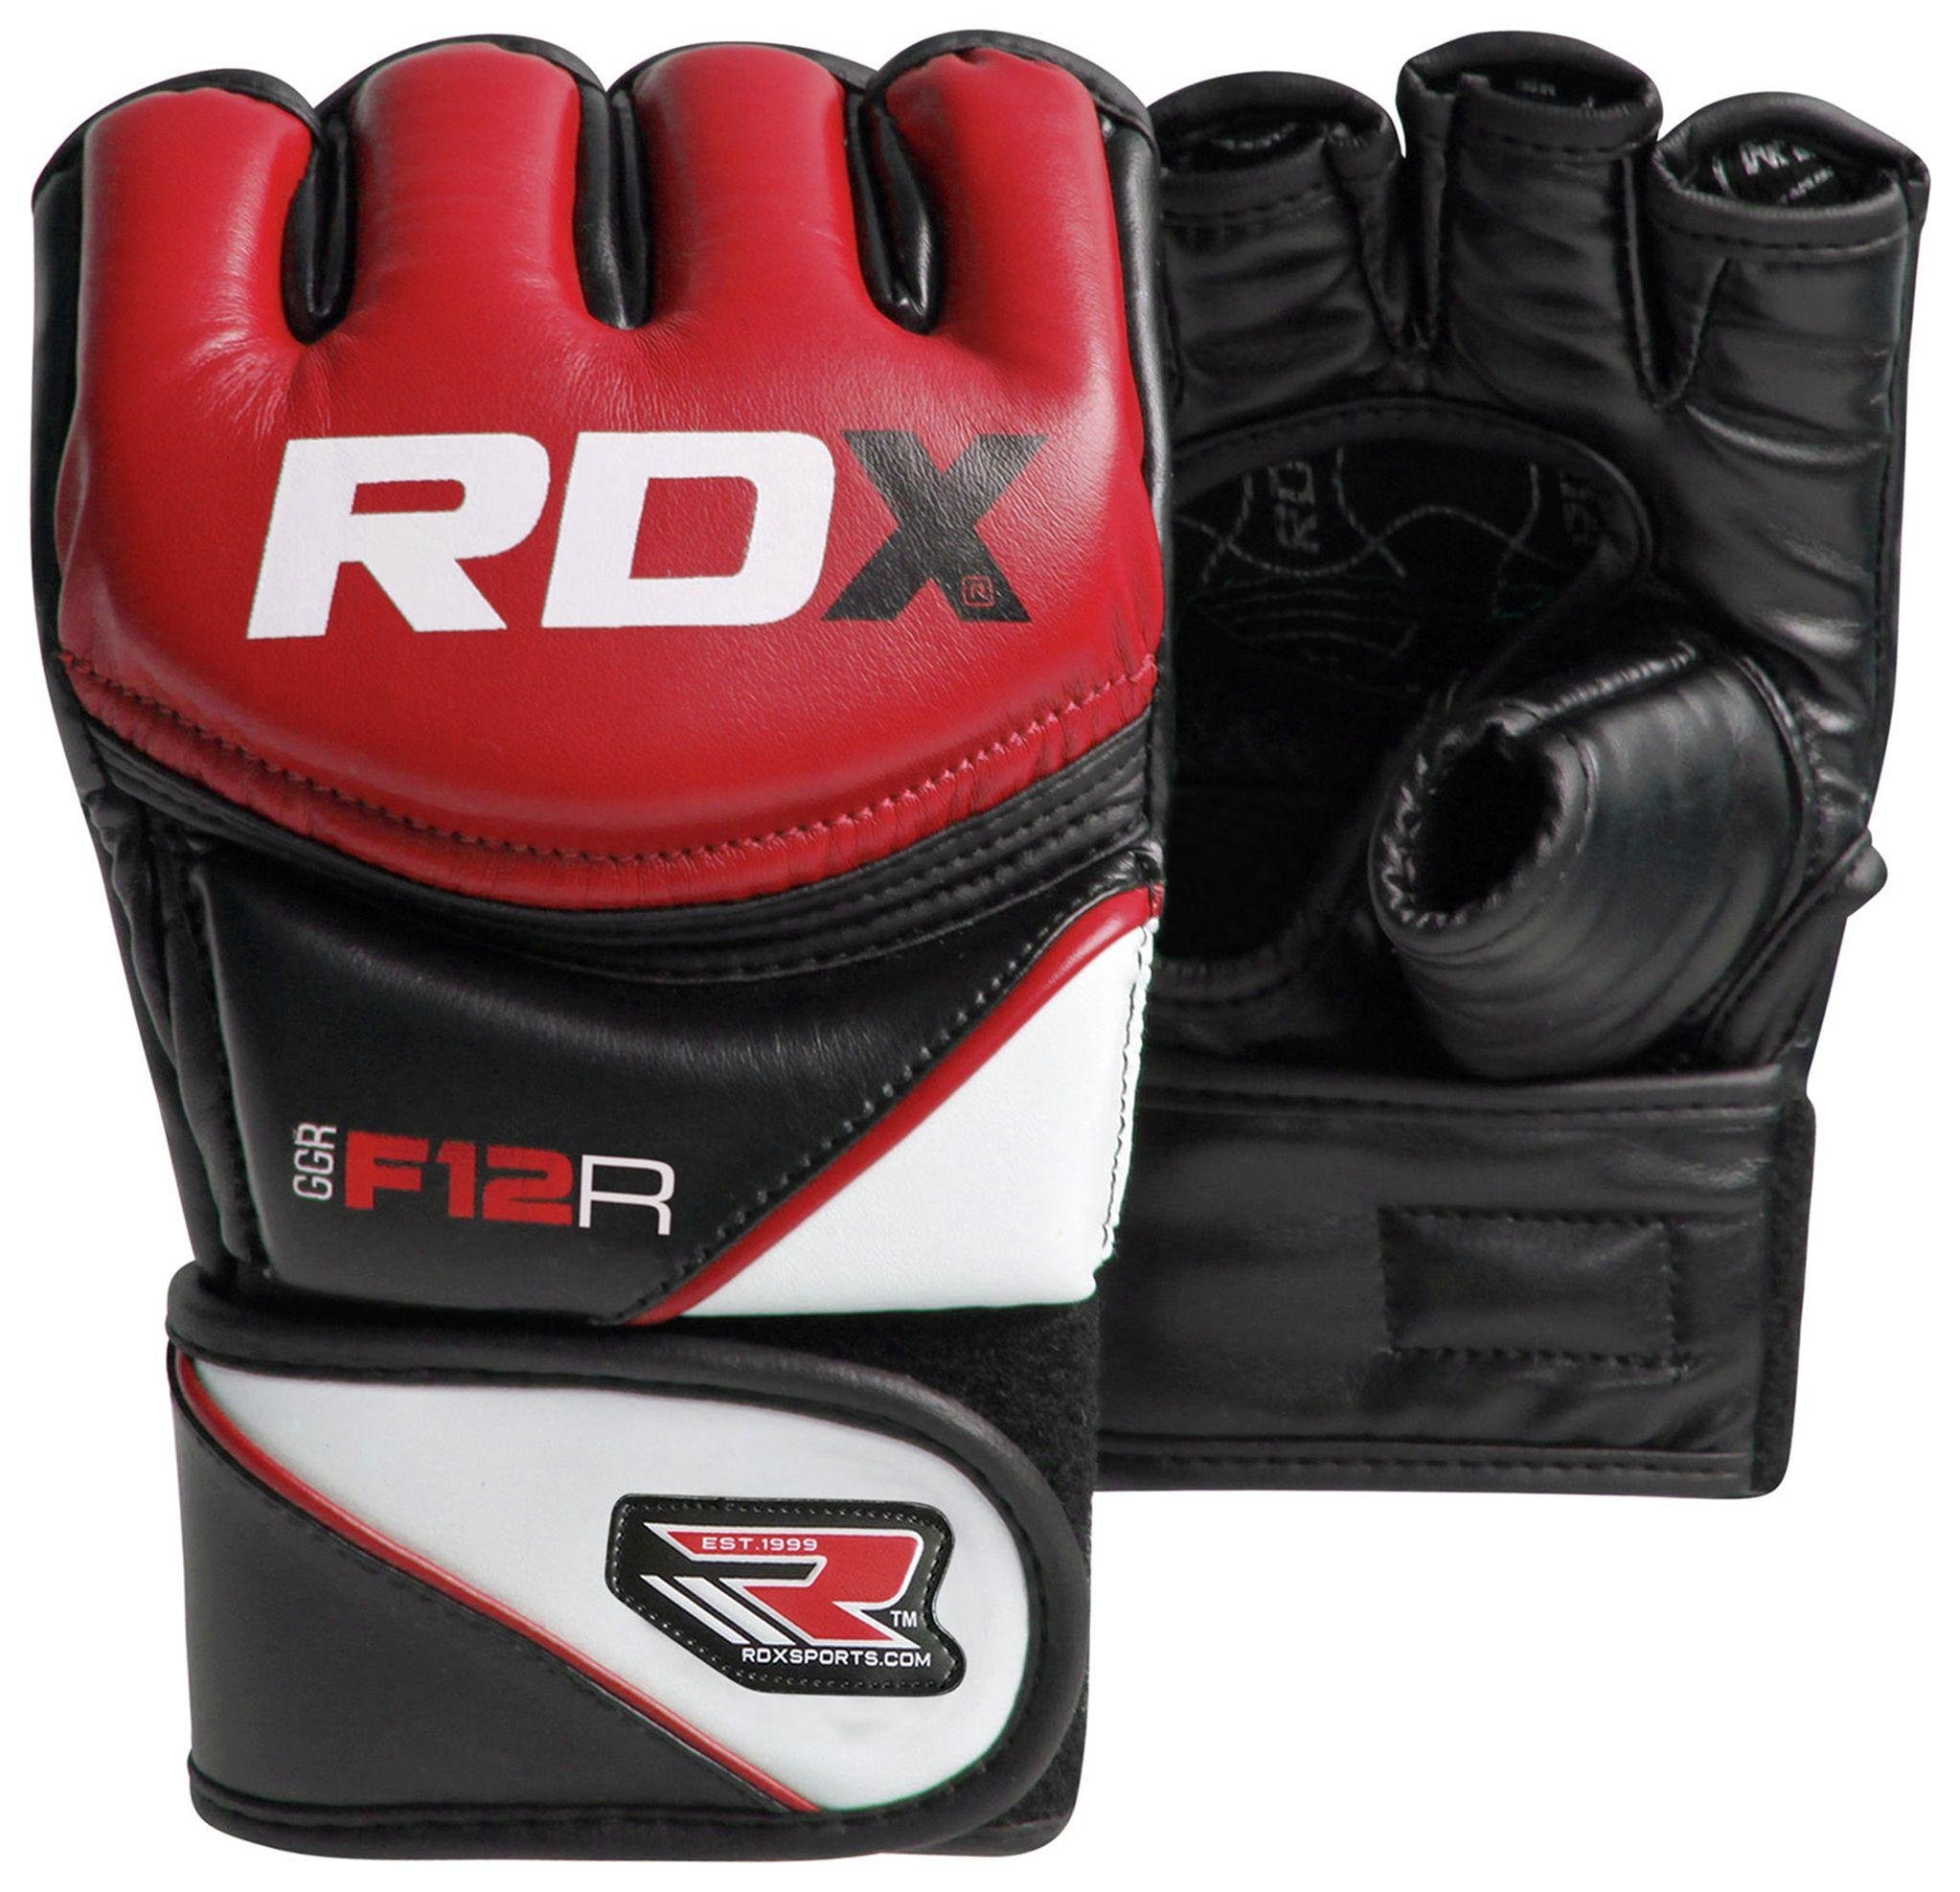 RDX - Synthetic Leather MMA Gloves Red - Medium/Large lowest price